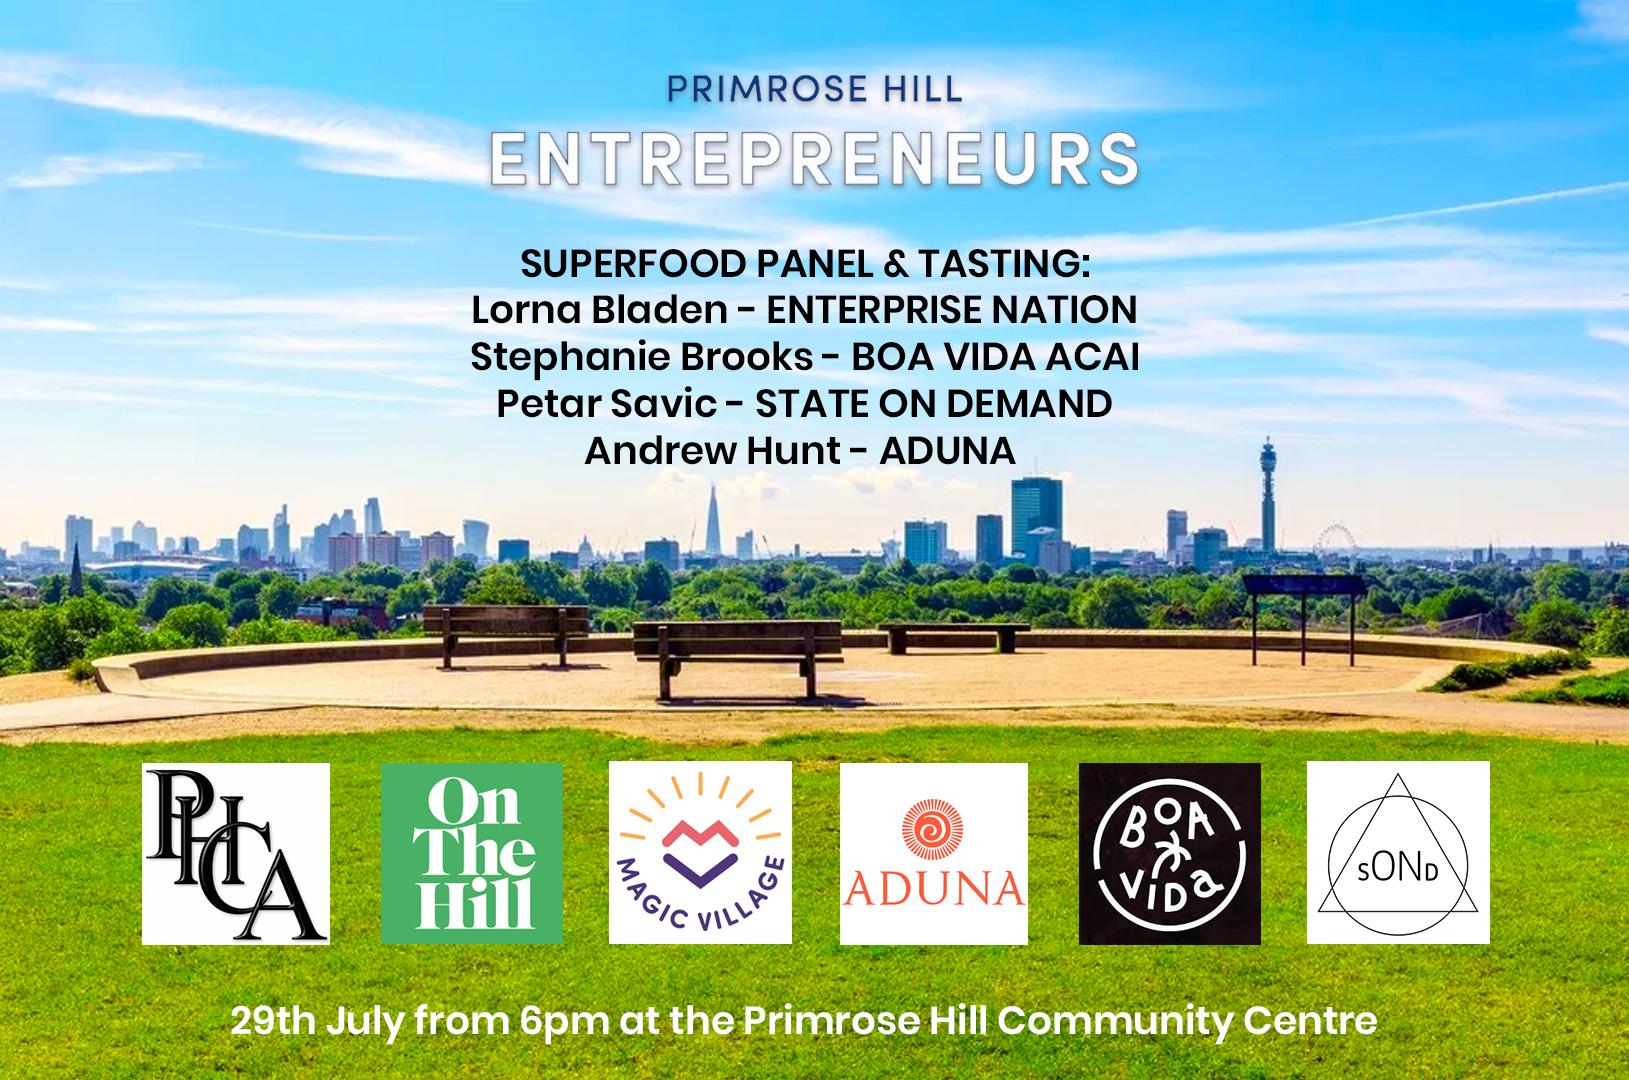 superfoods-panel-primrose-hill